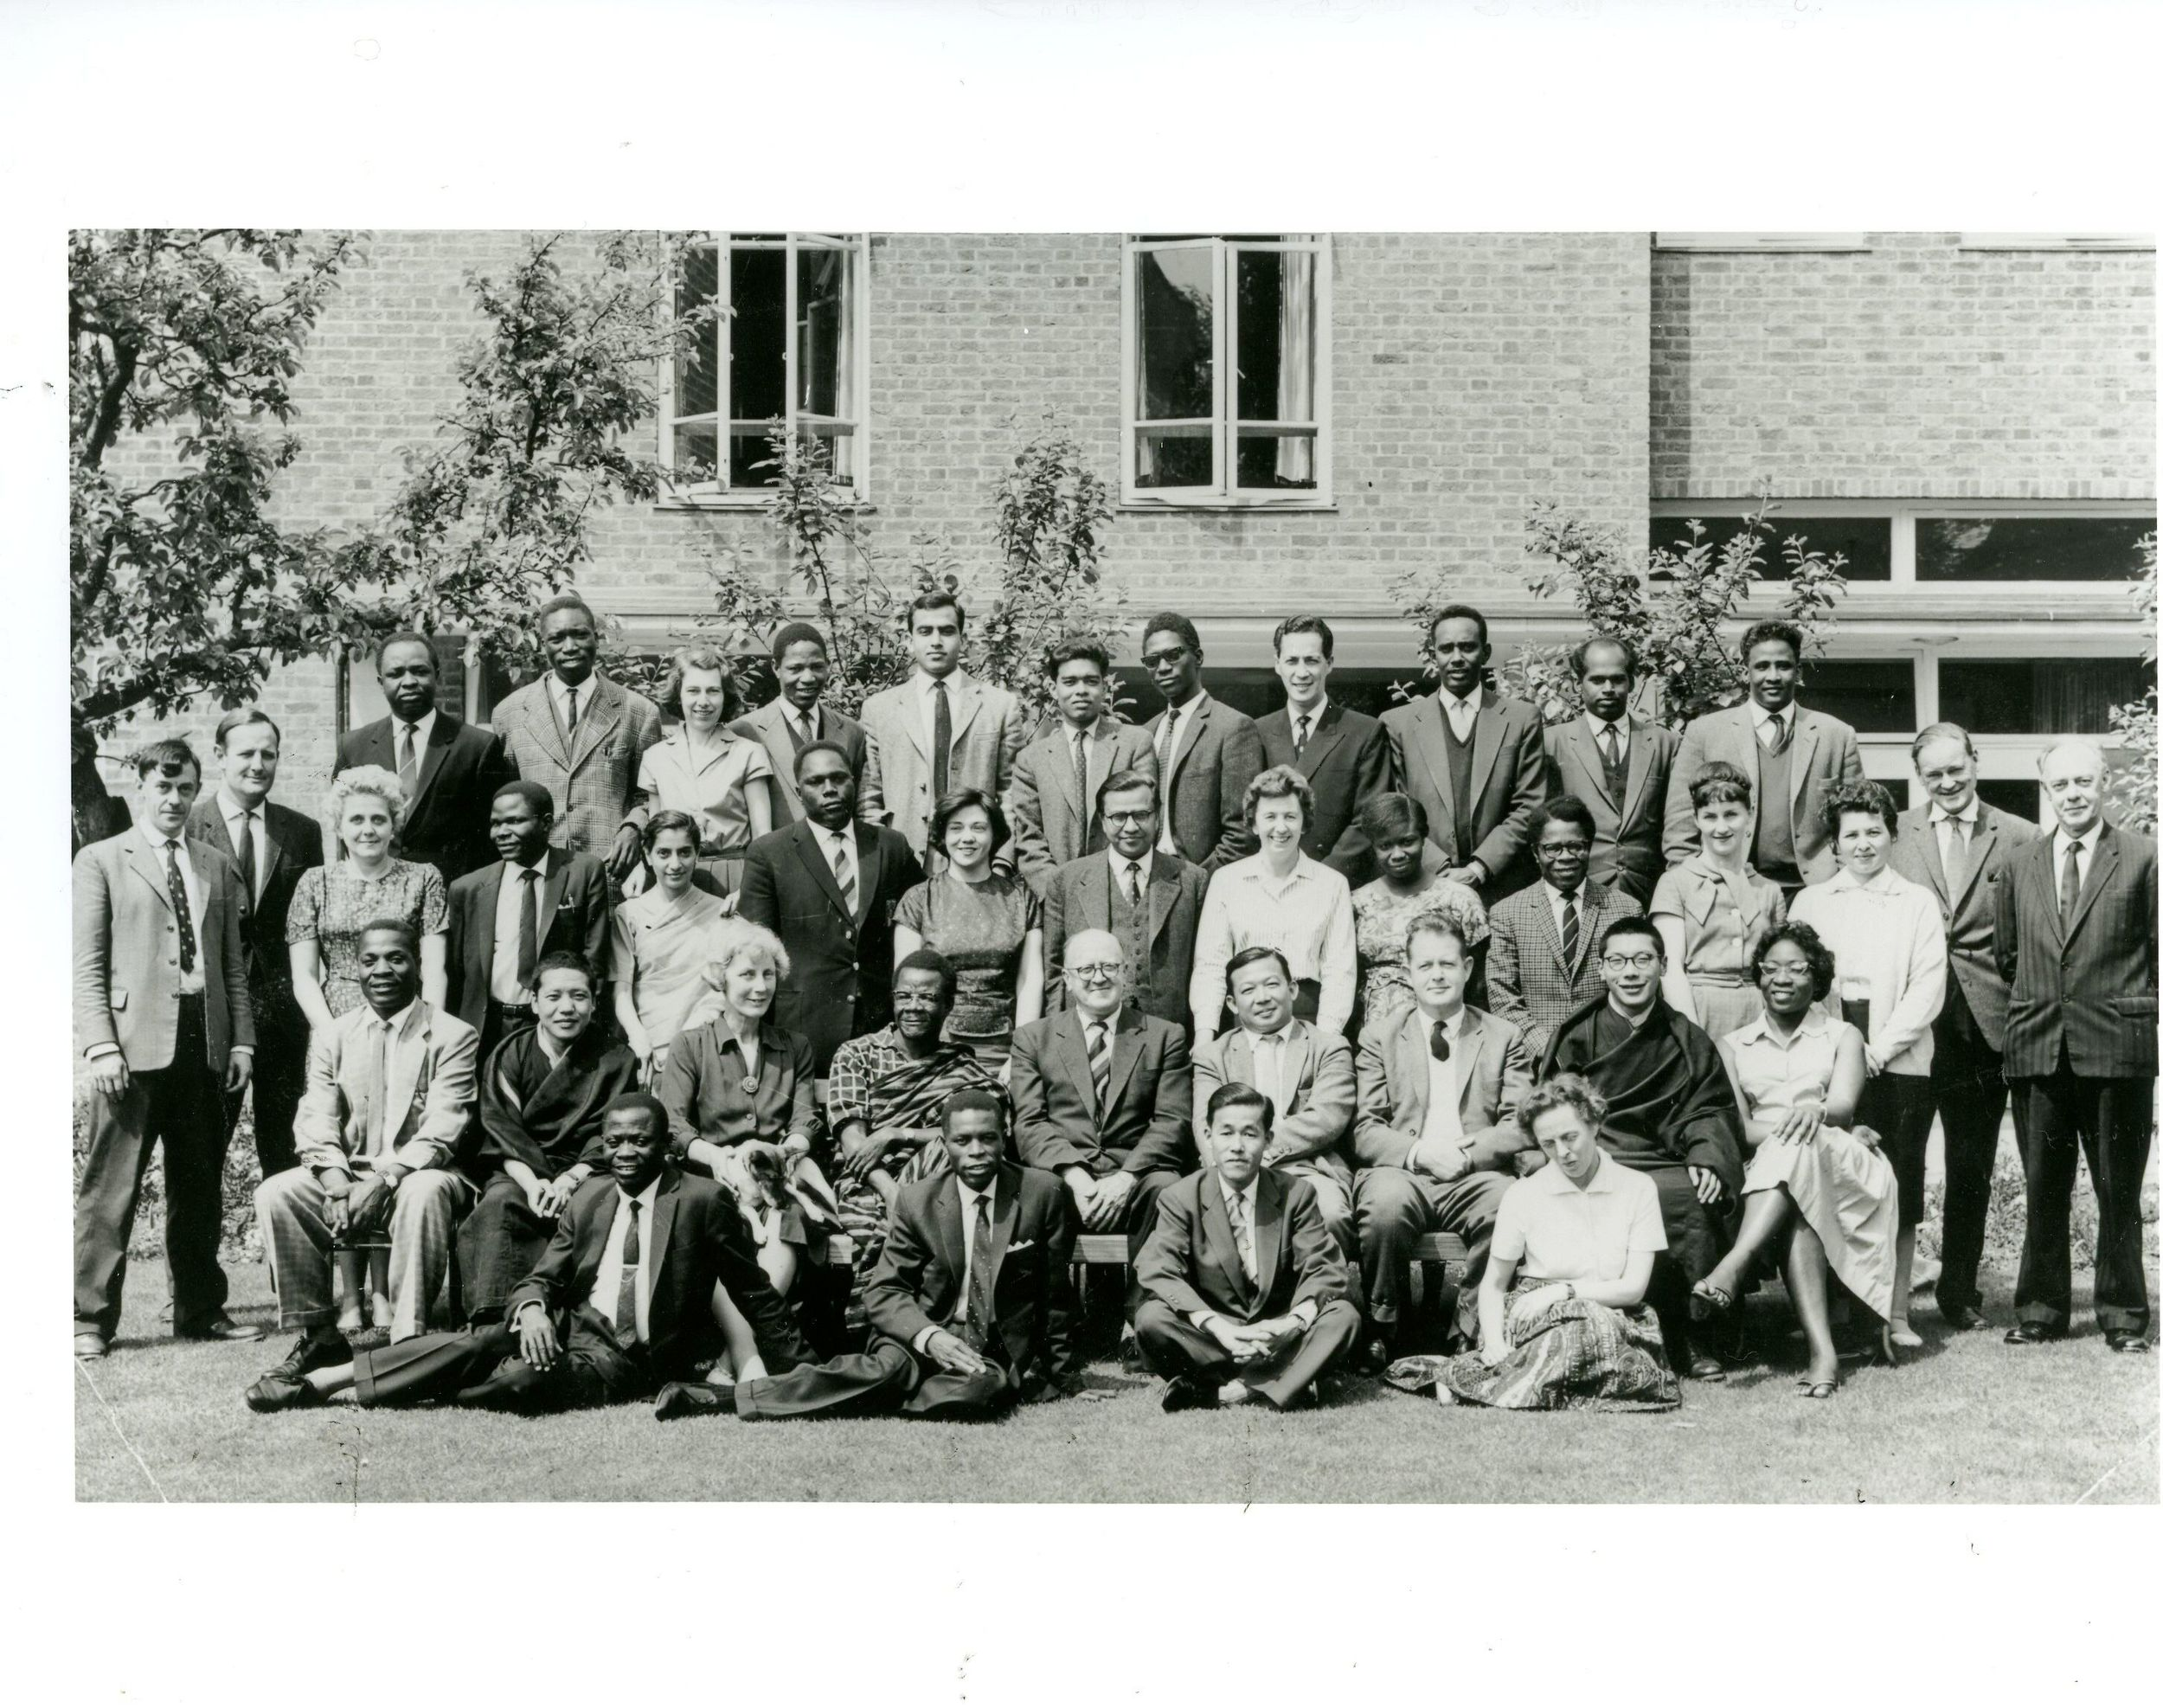 Chogyam Trungpa, Oxford (seated, 2nd from right)